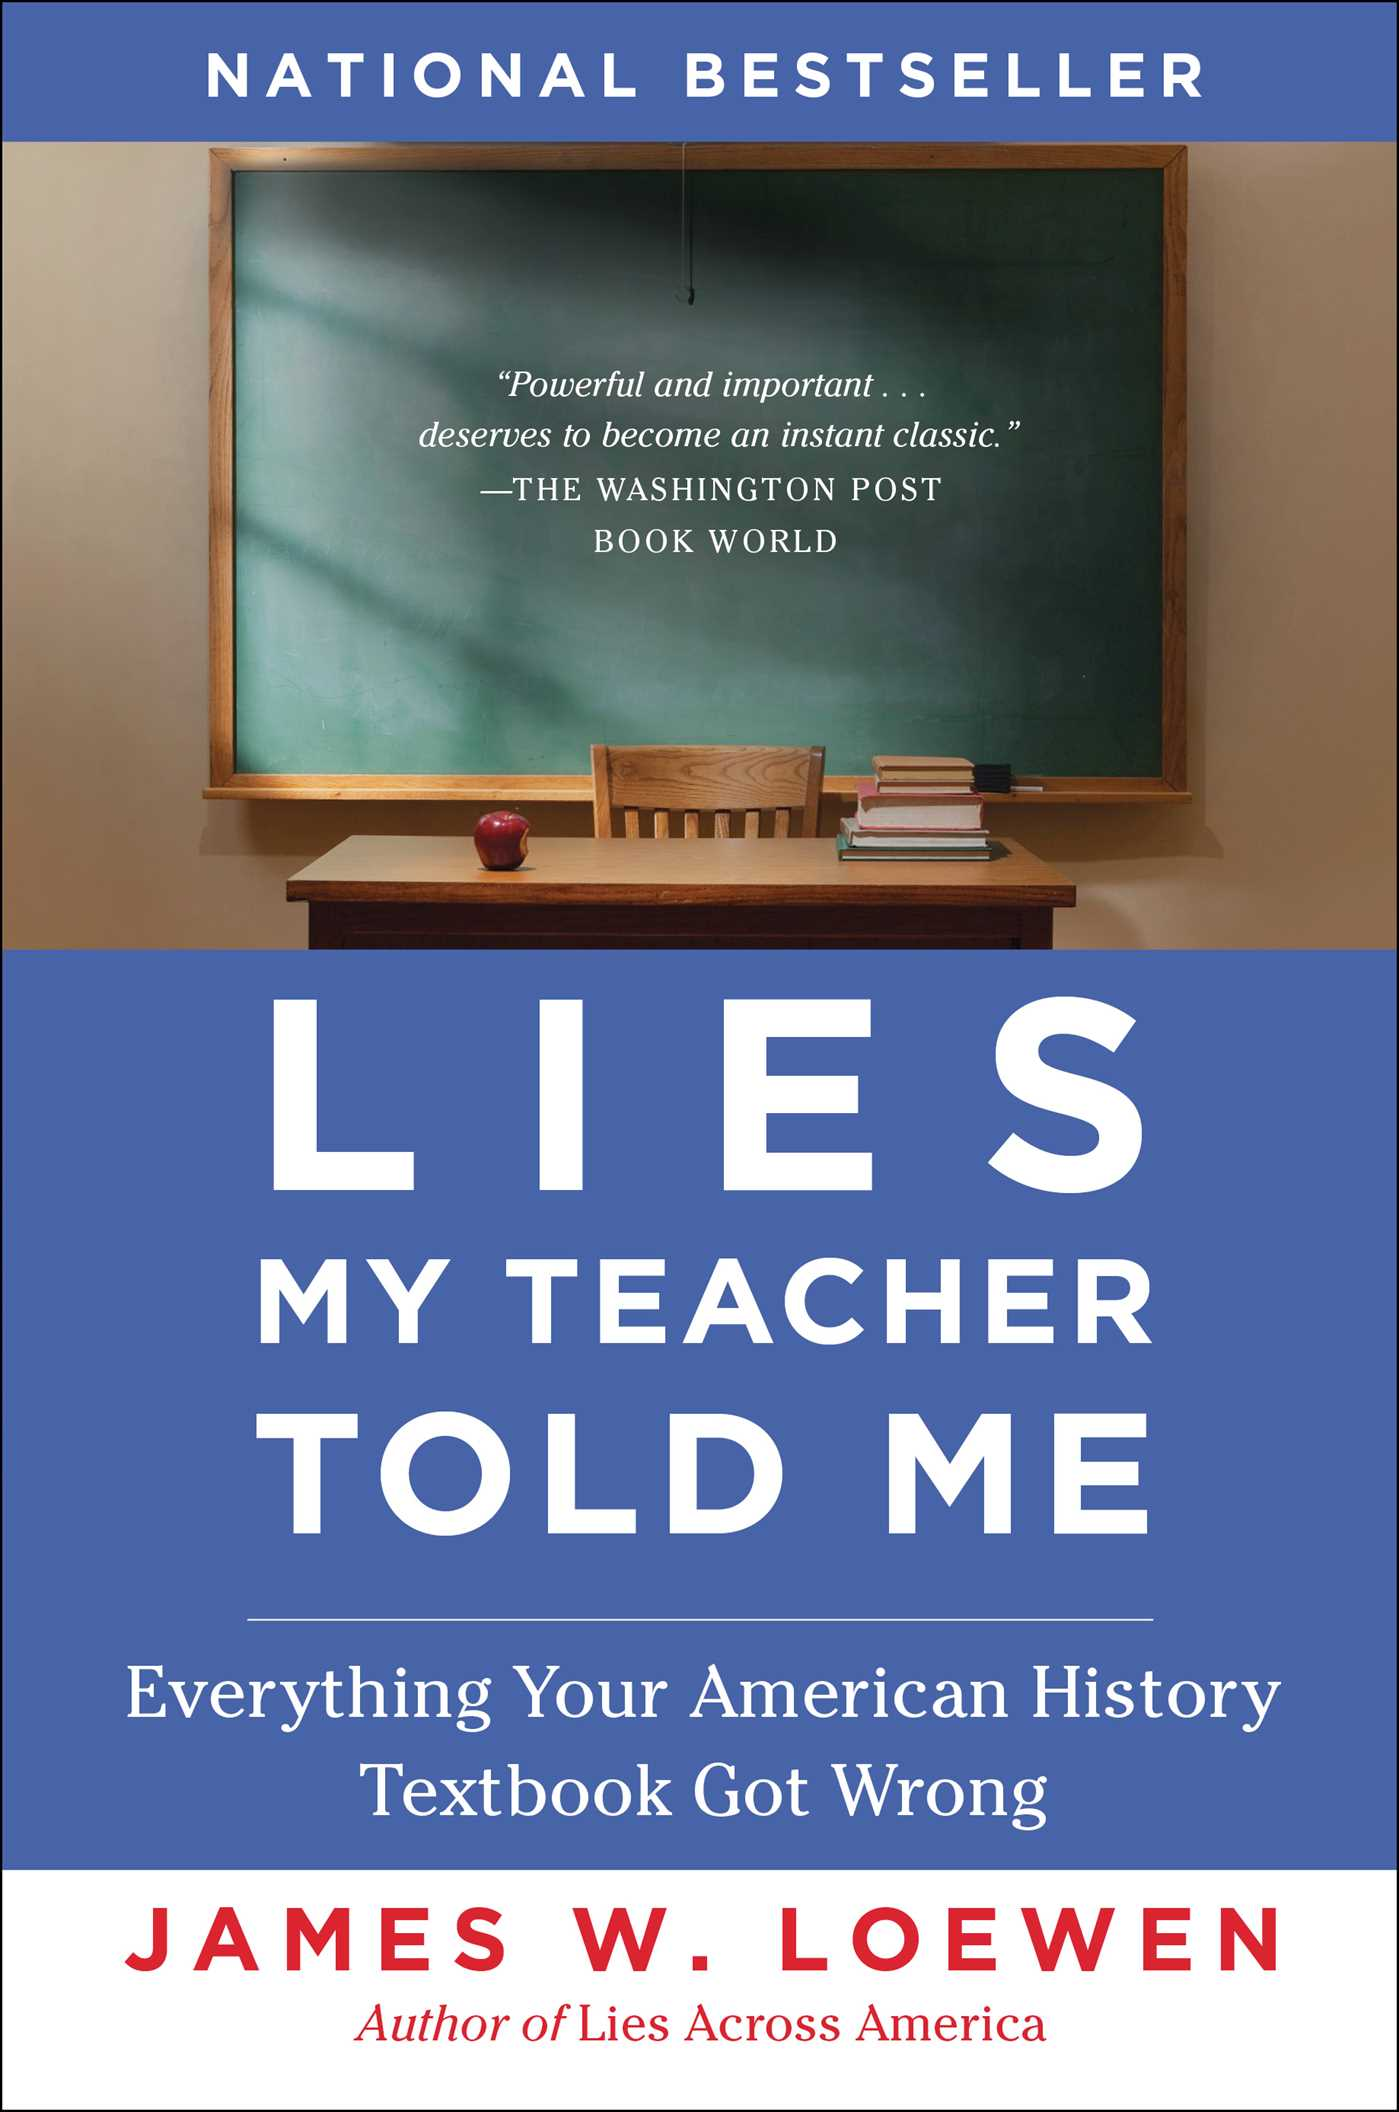 essays on lies my teacher told me Reading some essays from the book lies my teachers told me helped me open my eyes and see how wrong history is taught in high school we as citizens need to do the .